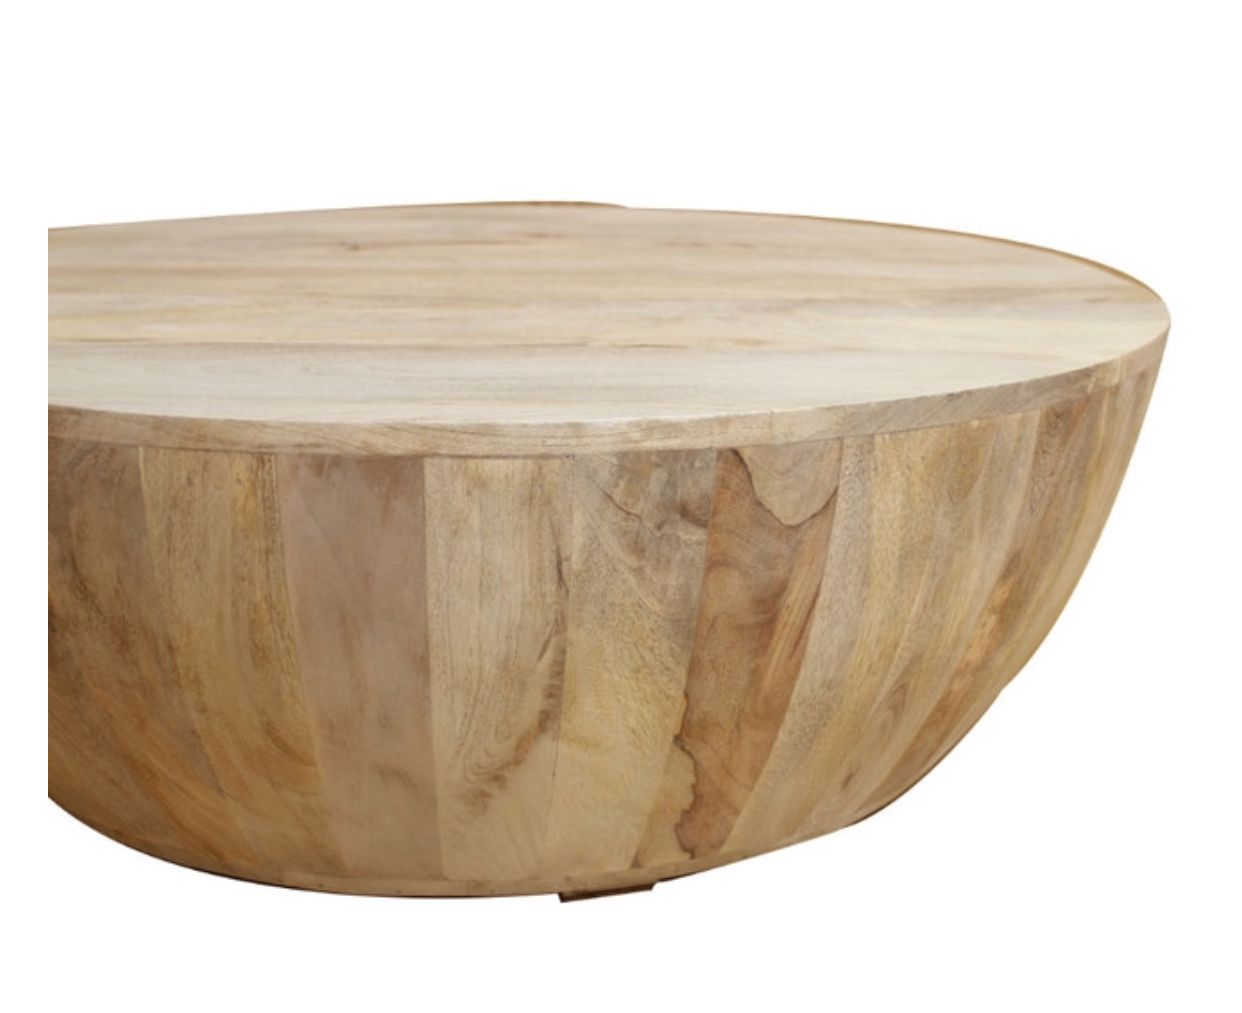 Ollie Coffee Table Transitional Coffee Tables By Benzara Woodland Imprts The Urban Port Coffee Table Round Wood Coffee Table Mango Wood Coffee Table [ 1013 x 1242 Pixel ]